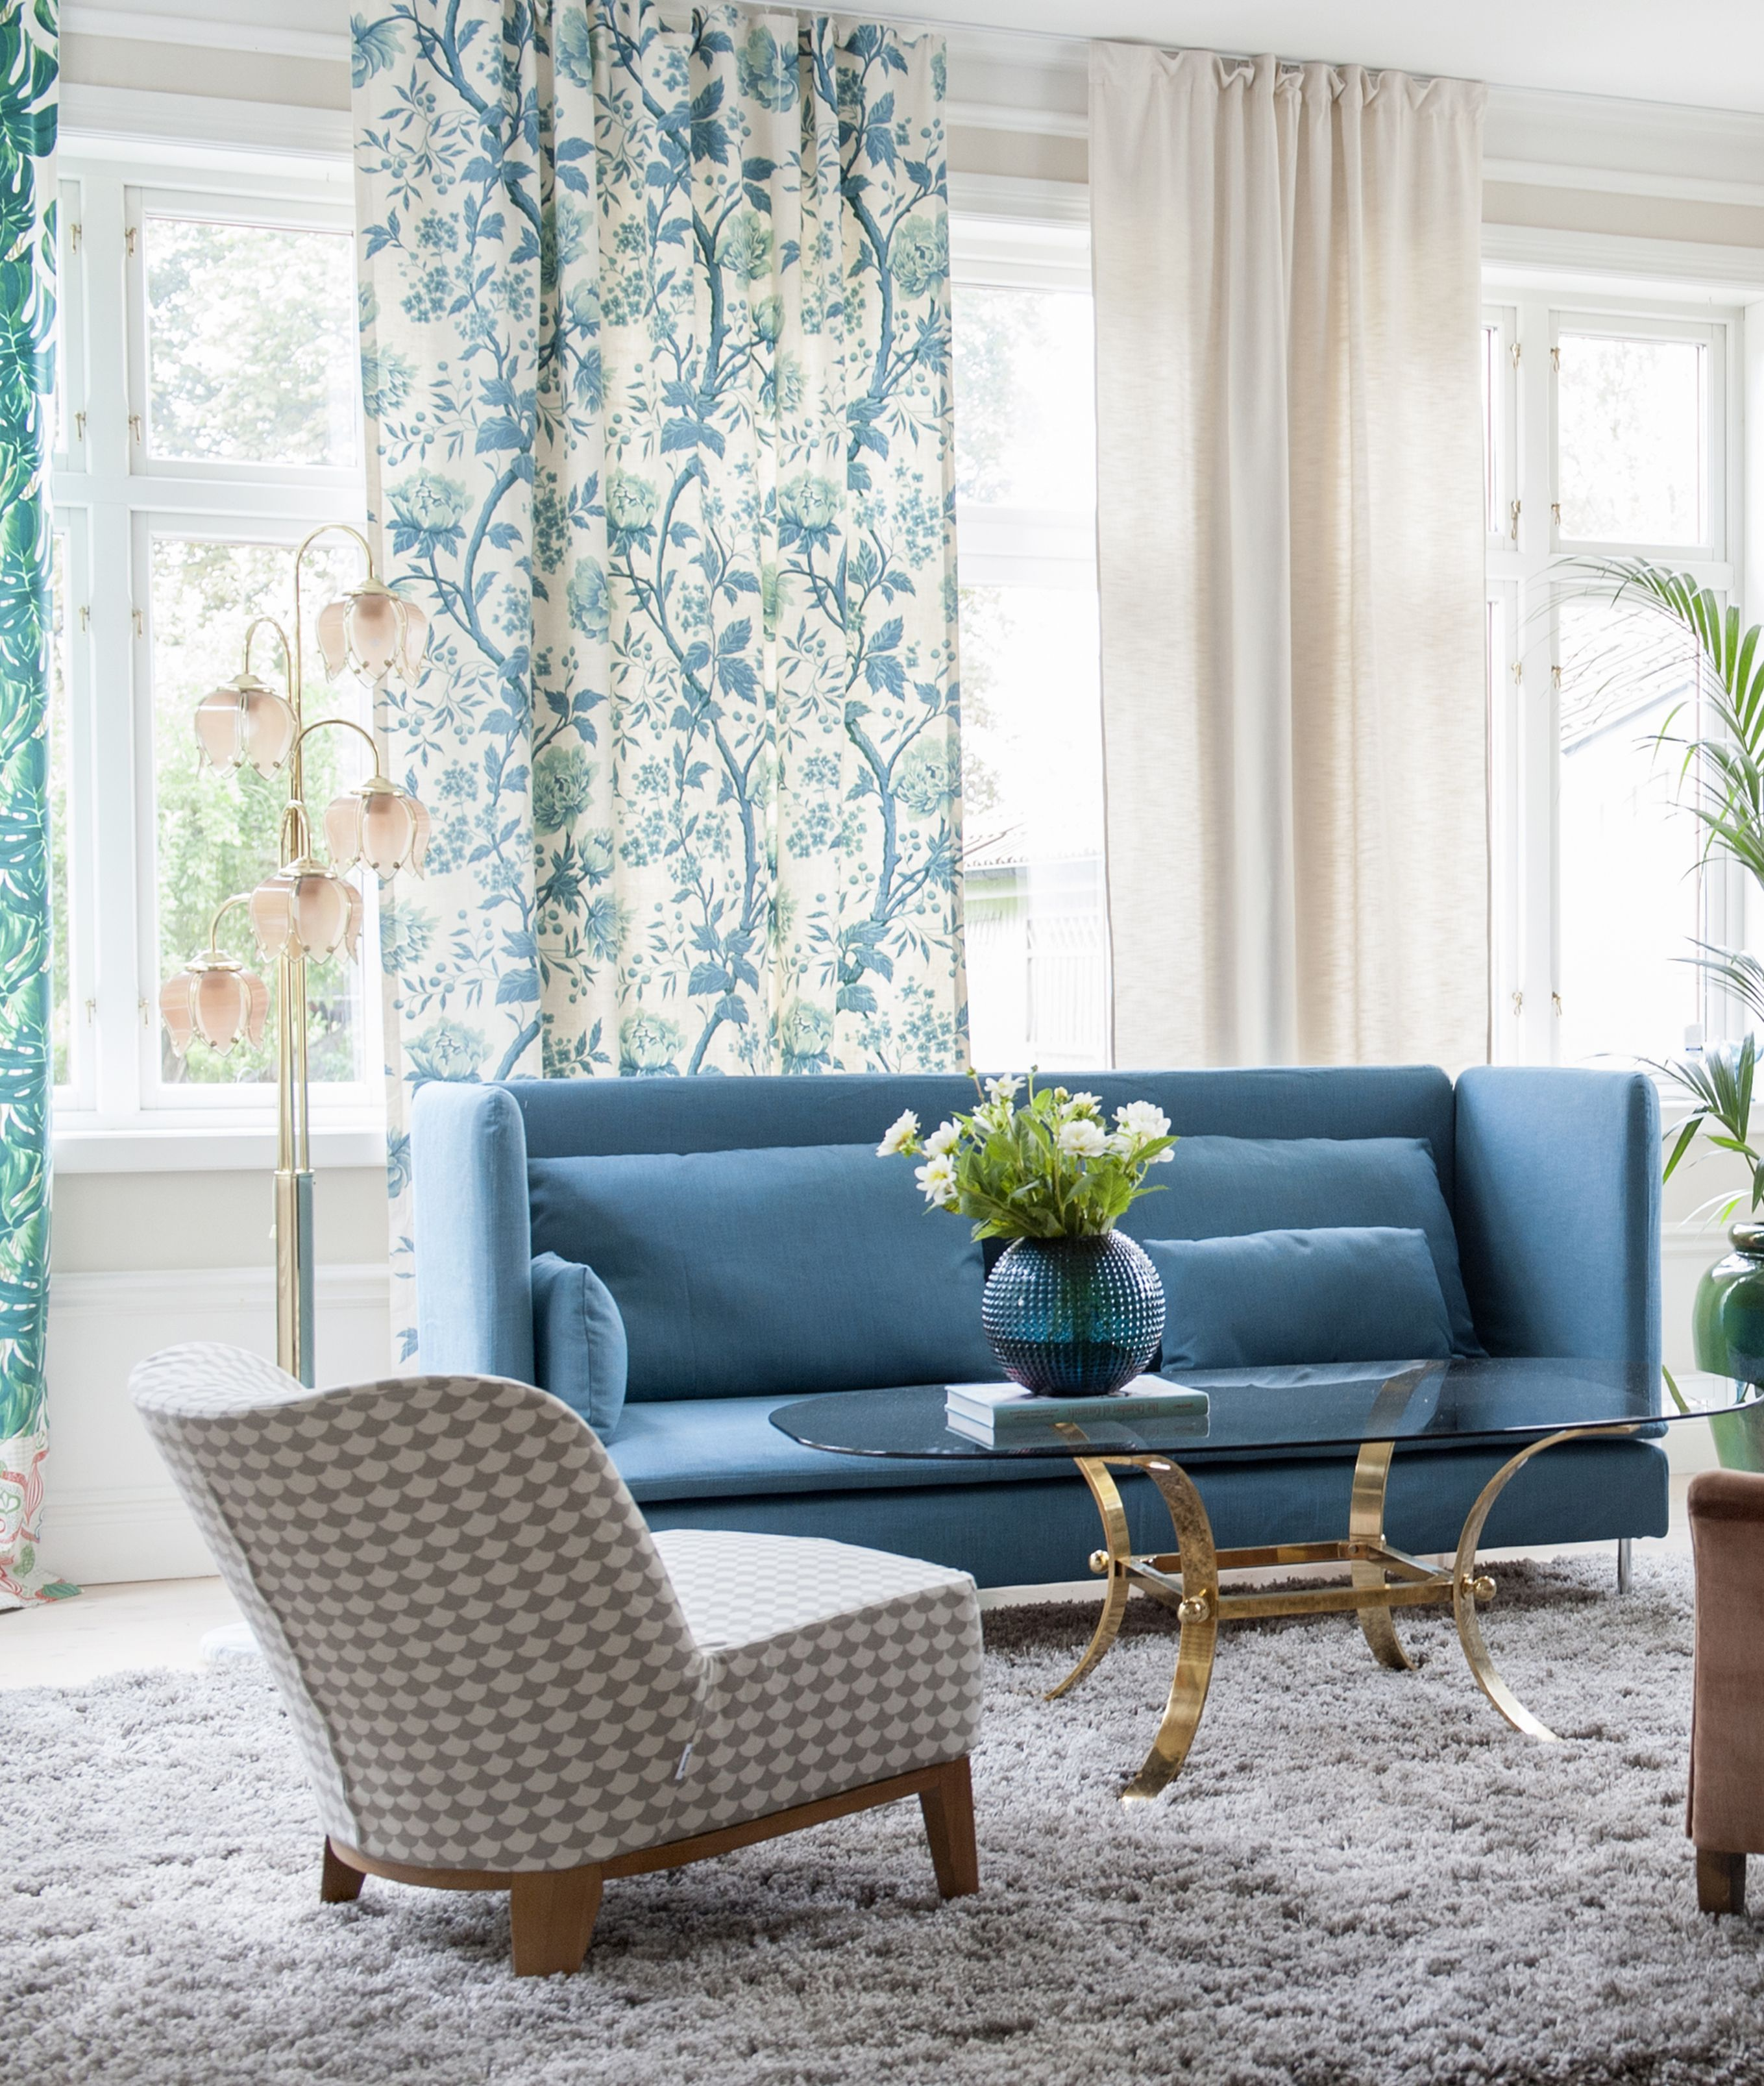 teal blue chair sashes glider patio chairs canada vintage curtains söderhamn high back sofa cover in